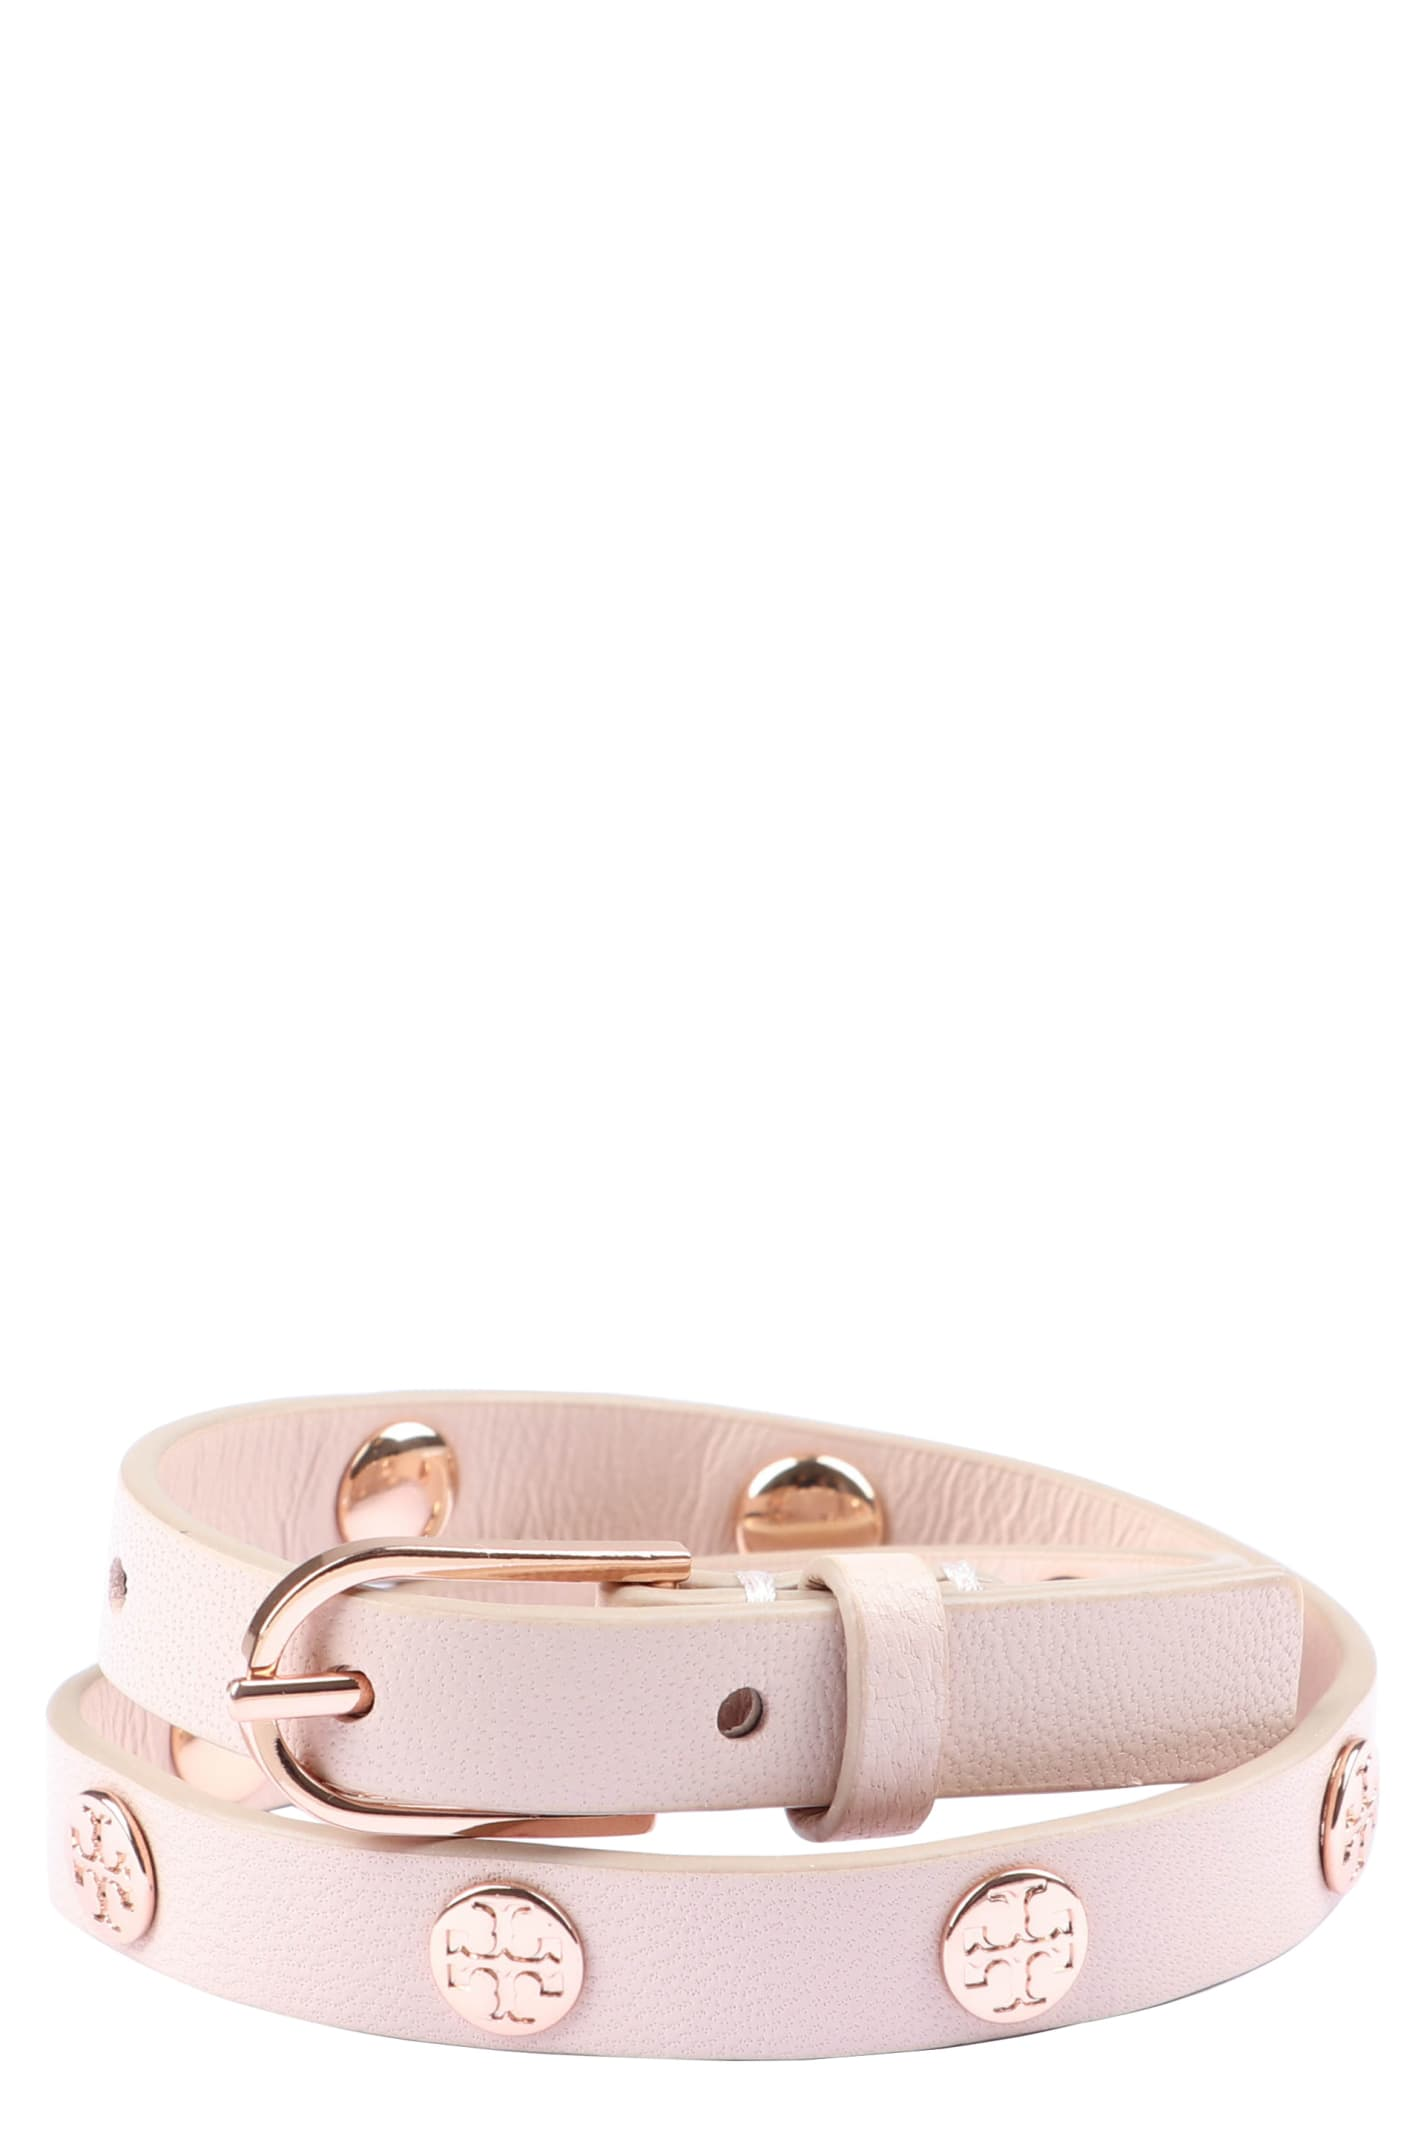 Tory Burch Studded Leather Double-wrap Bracelet